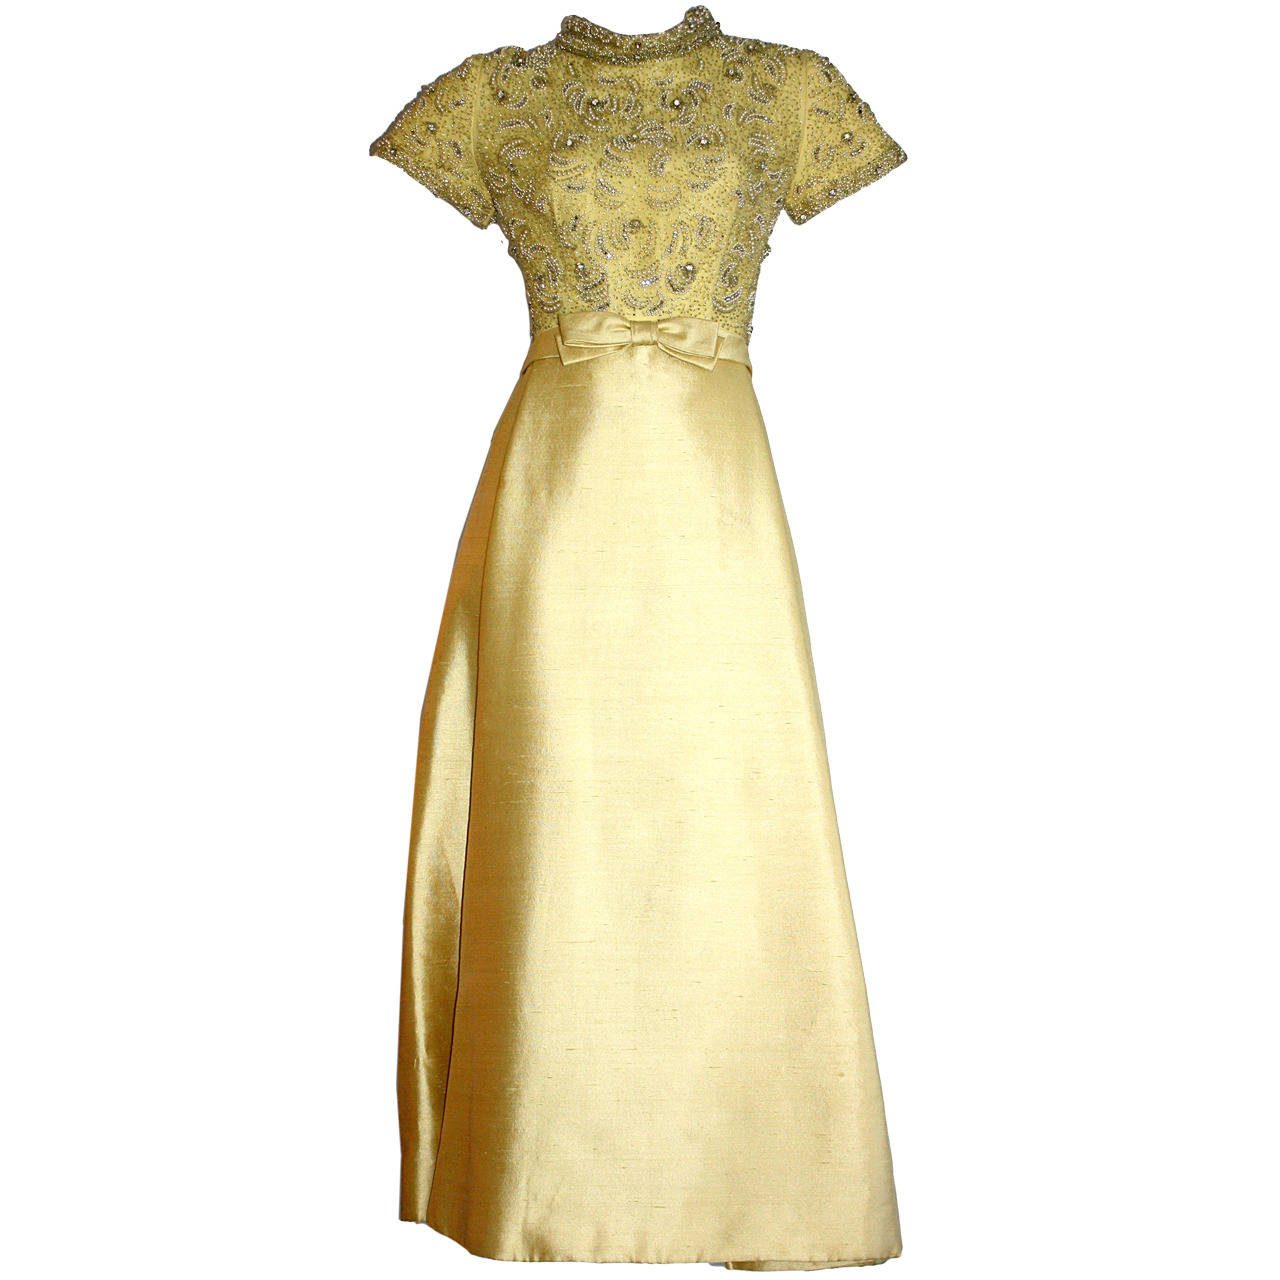 Gorgeous Vintage 1960s Wolfman S Of Houston Heavily Beaded Yellow Silk Bell Gown Vintage Dresses 1960s Evening Dresses Vintage Vintage Evening Gowns [ 1280 x 1280 Pixel ]